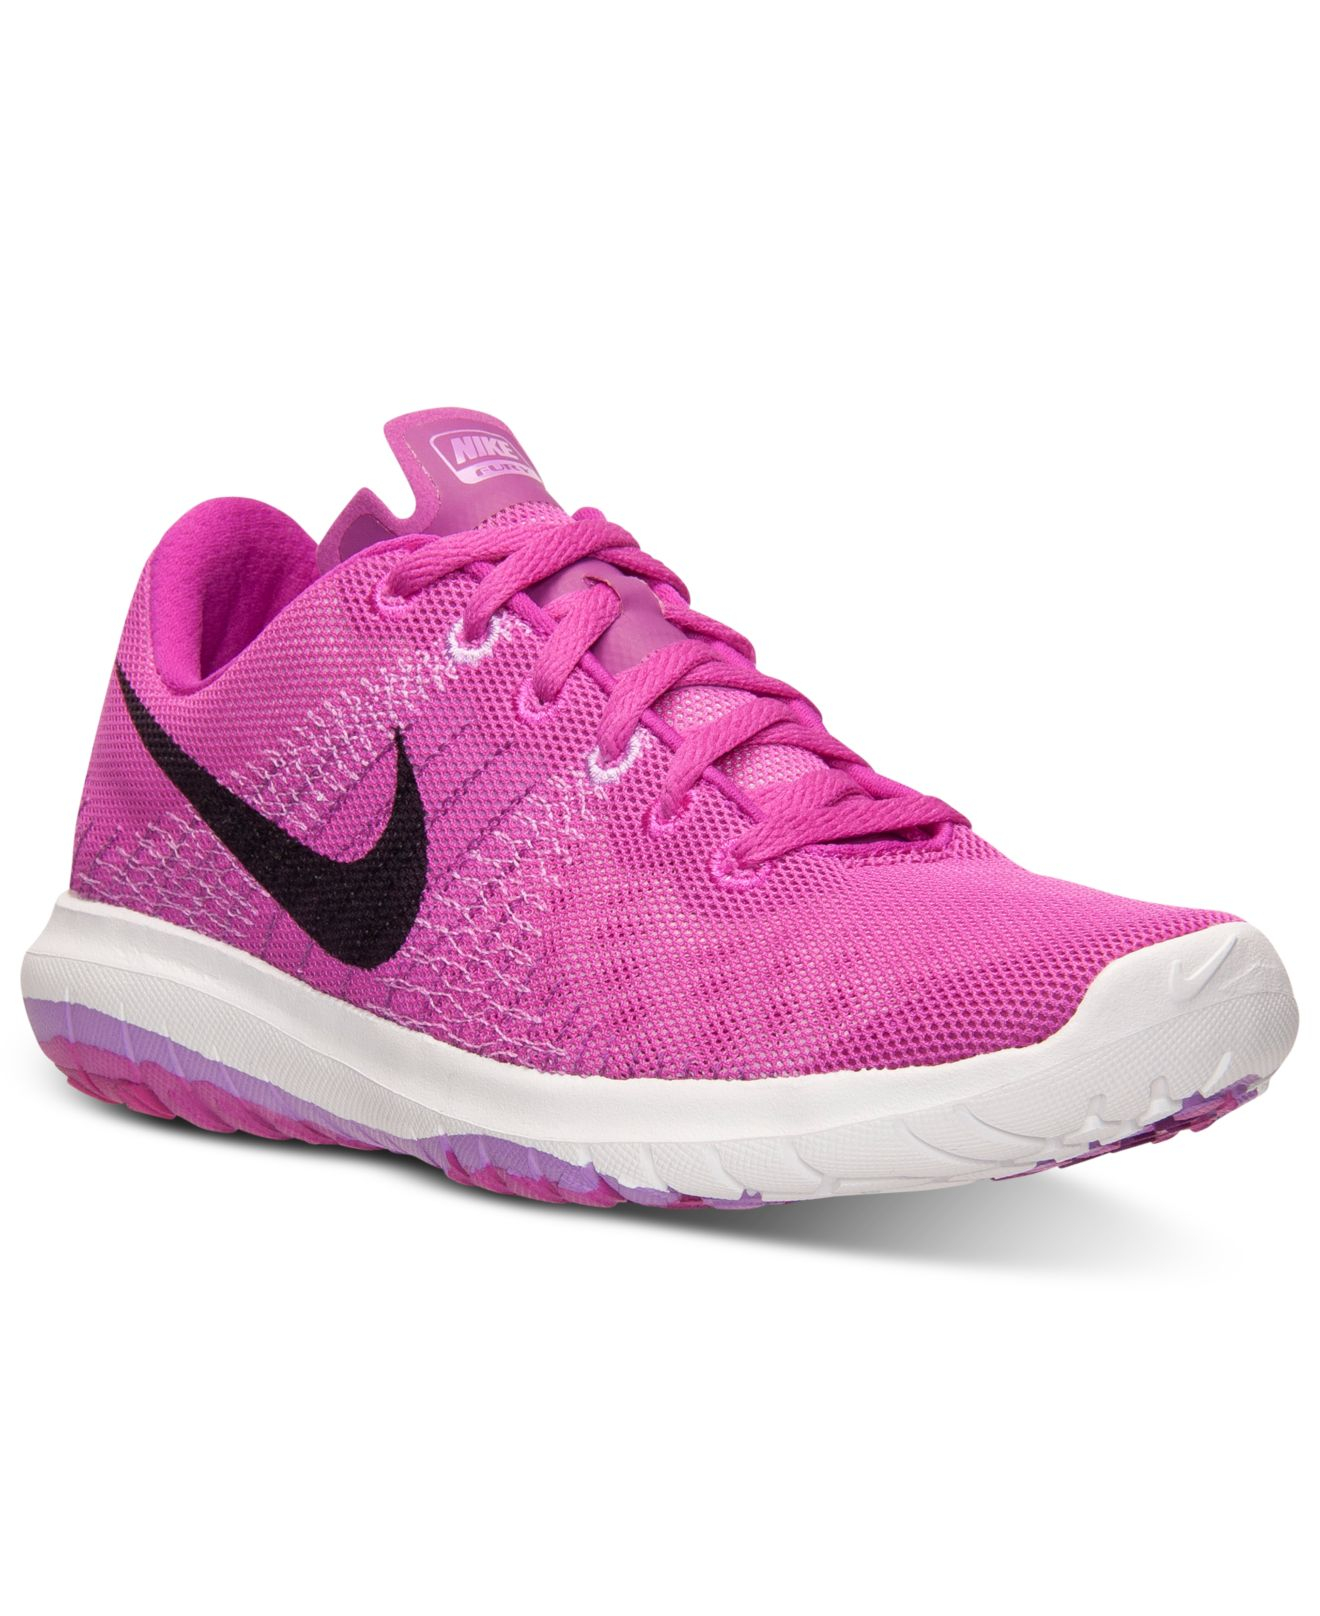 sports shoes f098f eebd2 Nike Purple Women's Flex Fury Running Sneakers From Finish Line